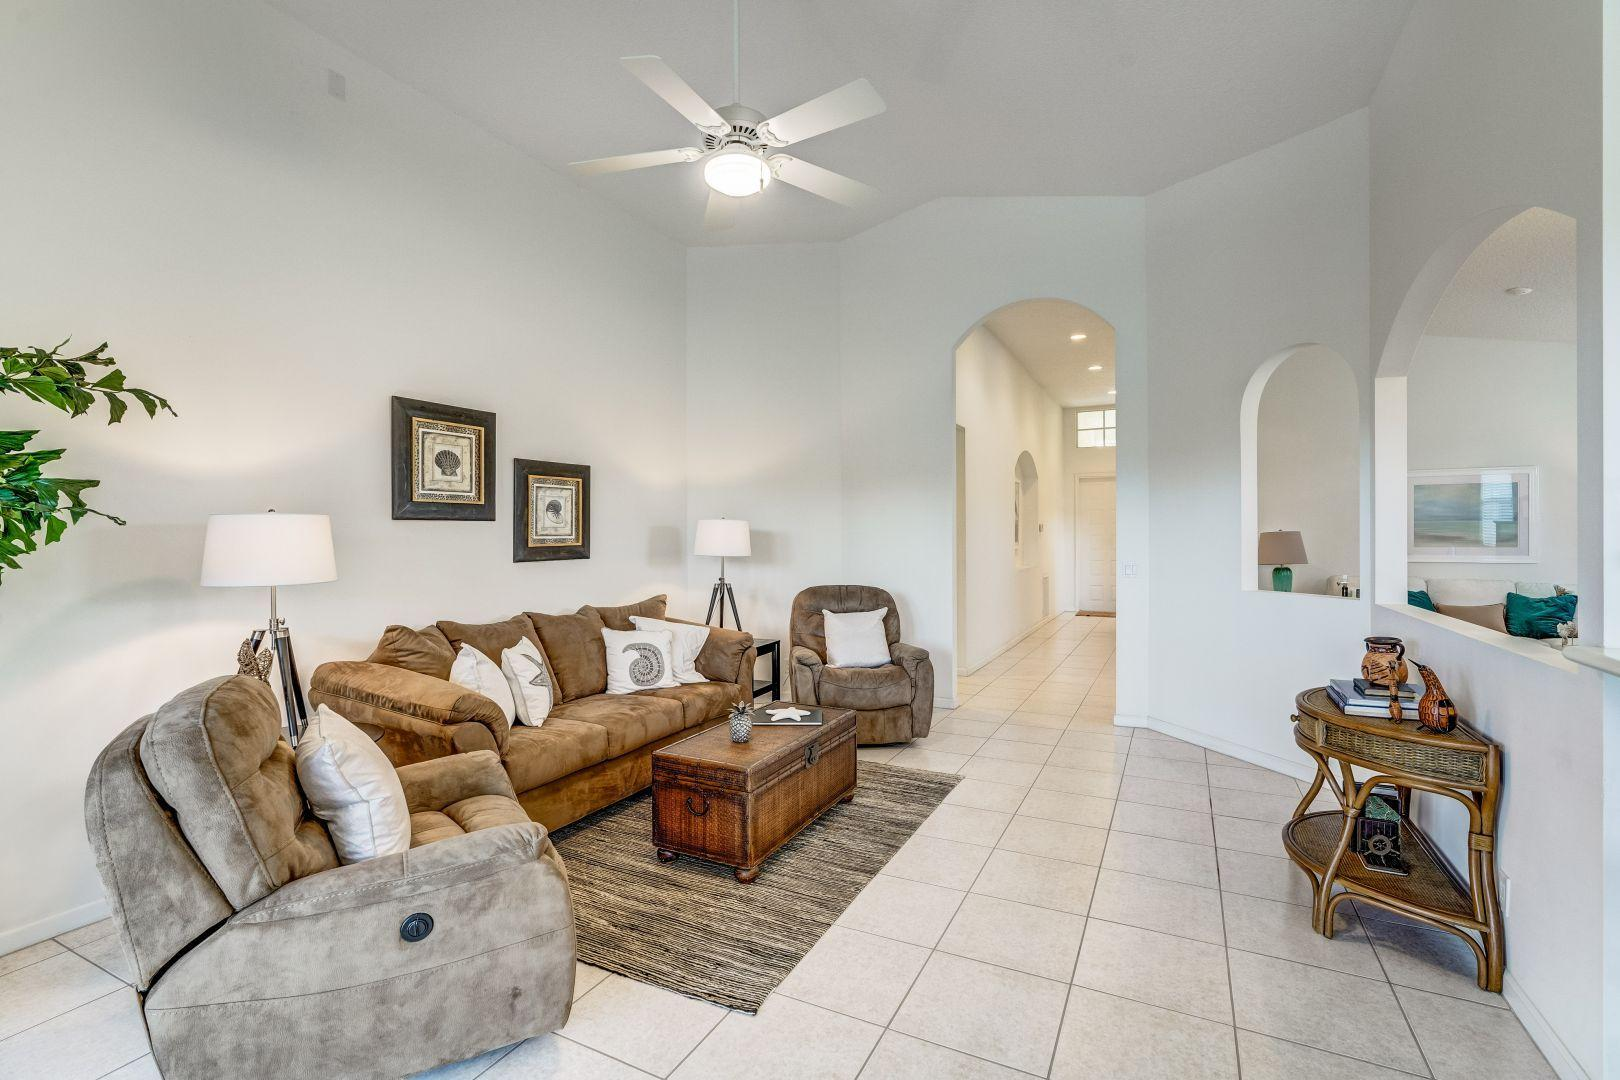 136 hidden hollow terrace palm beach gardens fl 33418 - Keller williams palm beach gardens ...